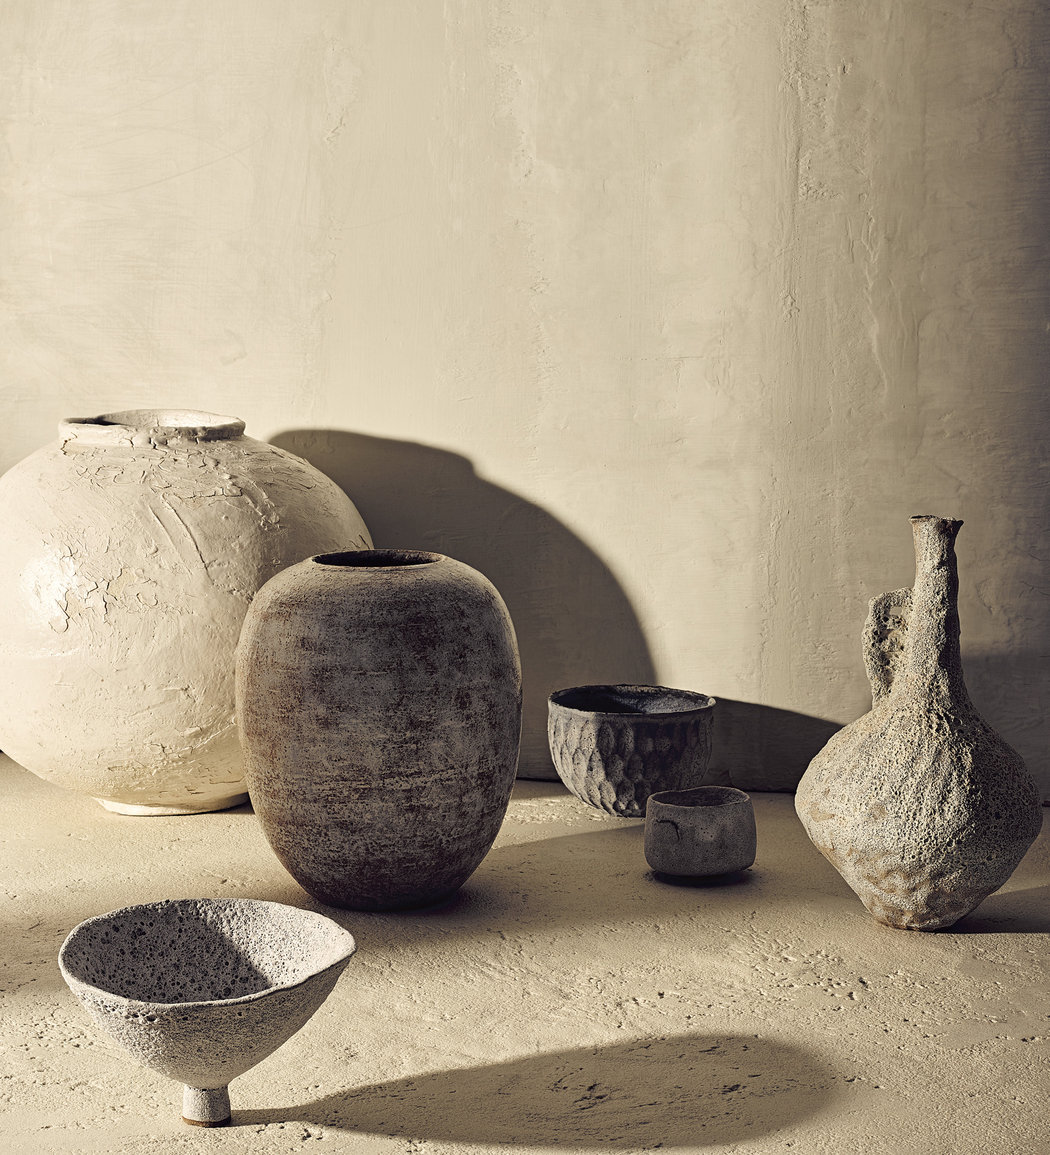 Clockwise from back left: No. vase with cracked Shino glaze, Dora Alzamora Good's hand-thrown stoneware vase, a textured glaze cereal bowl by Akiko Hirai and a terracotta tea bowl, jug and ceremonial vessel from Alana Wilson.CreditPhotograph by Brooke Holm. Styled by Victoria Petro Conroy